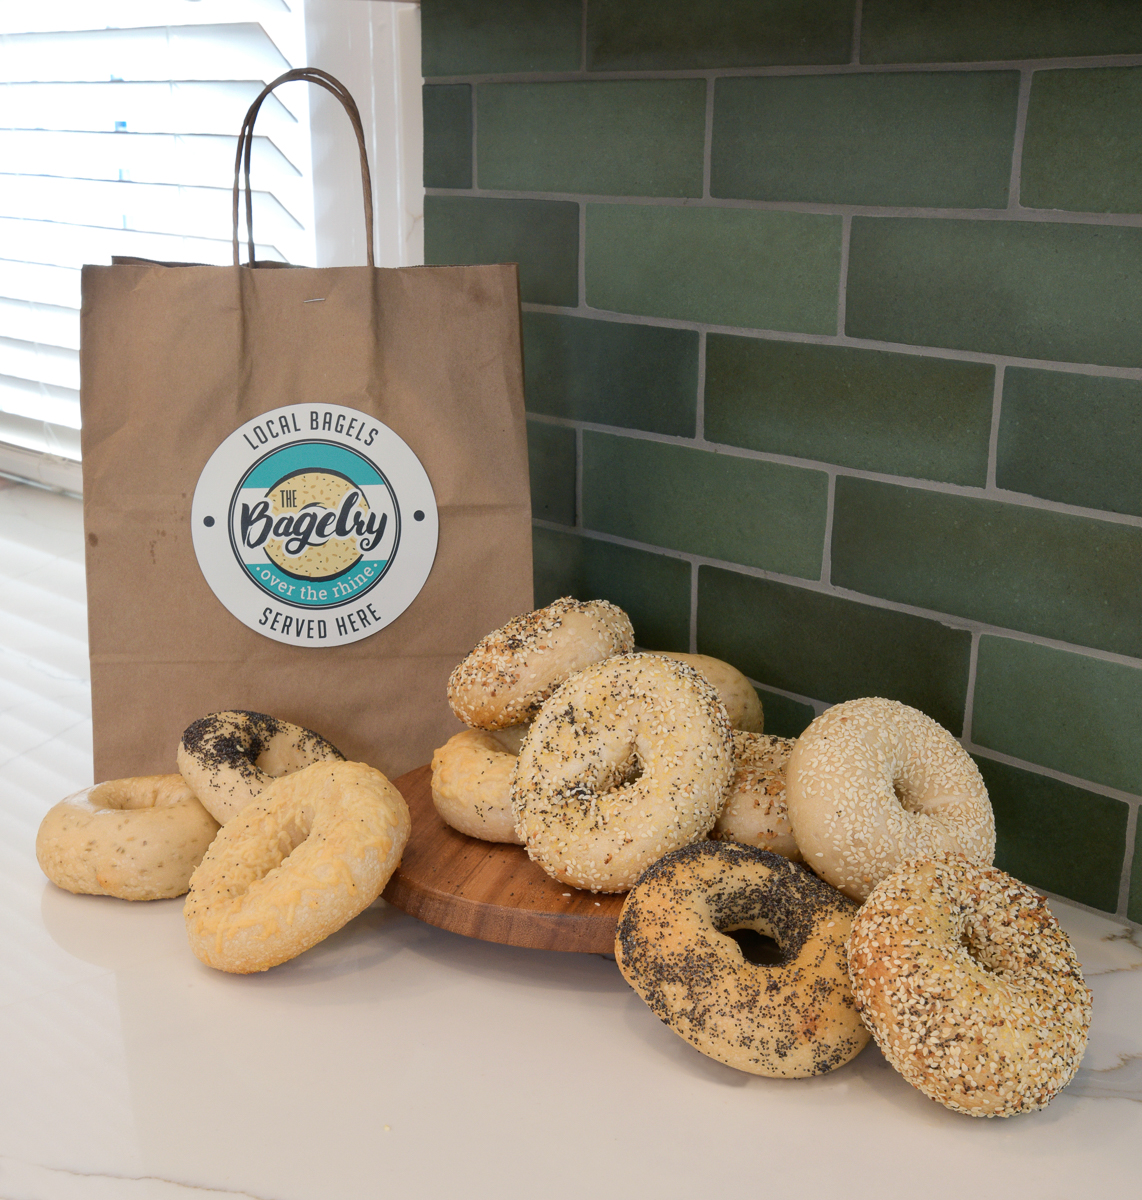 "Richard owns{&nbsp;}<a  href=""http://cincinnatirefined.com/eat-drink/the-bagelry-bagels"" target=""_blank"" title=""http://cincinnatirefined.com/eat-drink/the-bagelry-bagels"">The Bagelry</a>{&nbsp;}in Over-the-Rhine. / Image: Daniel Feldkamp // Published: 11.1.20"